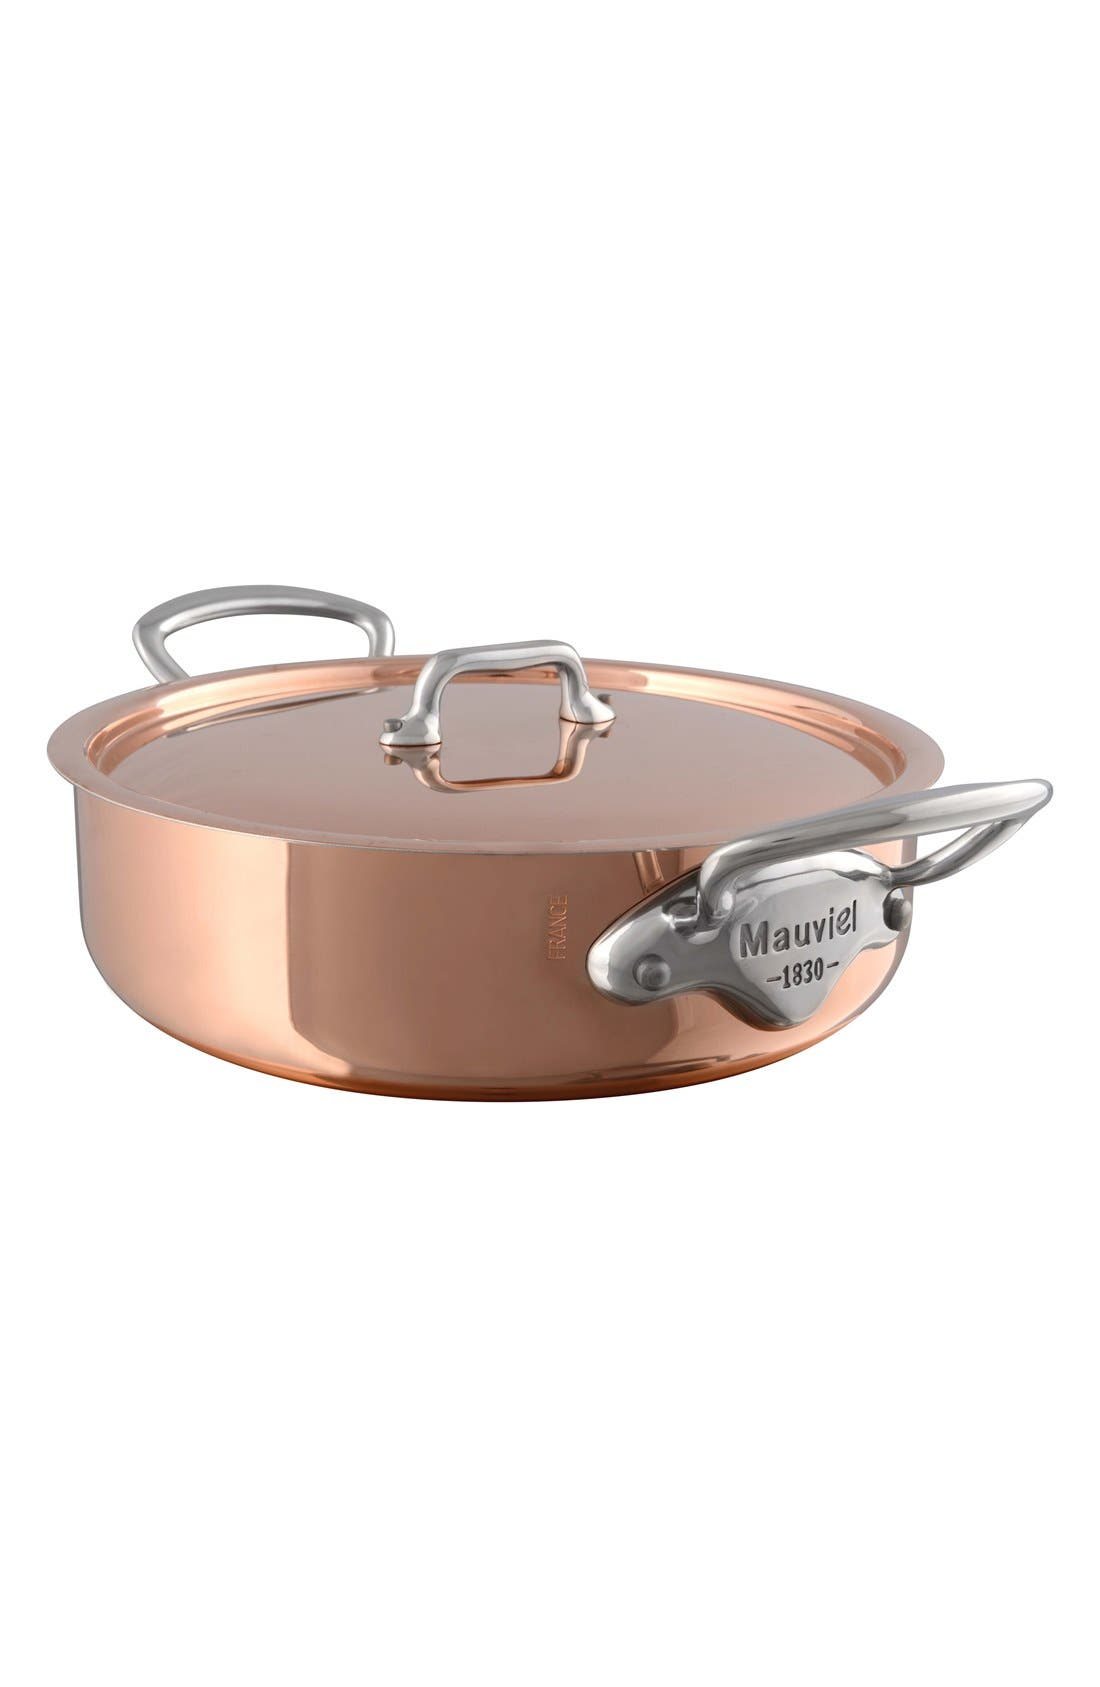 Main Image - Mauviel M'héritage - M'150s Copper & Stainless Steel Rondeau with Lid